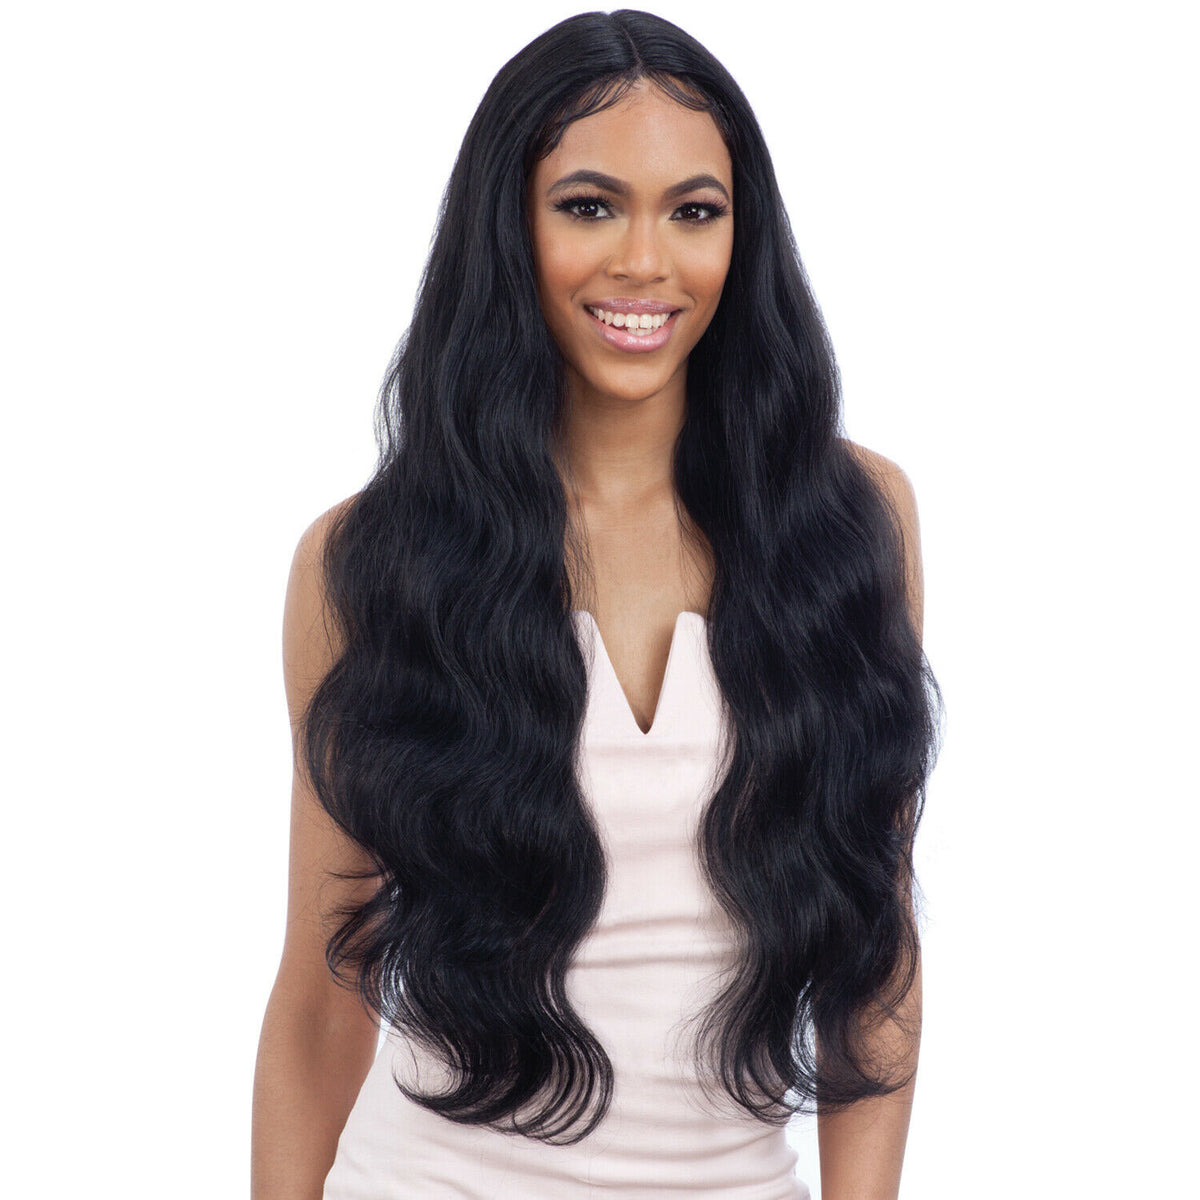 FREETRESS EQUAL SYNTHETIC FREEDOM PART LACE FRONT HAIR WIG - FREEDOM PART 402